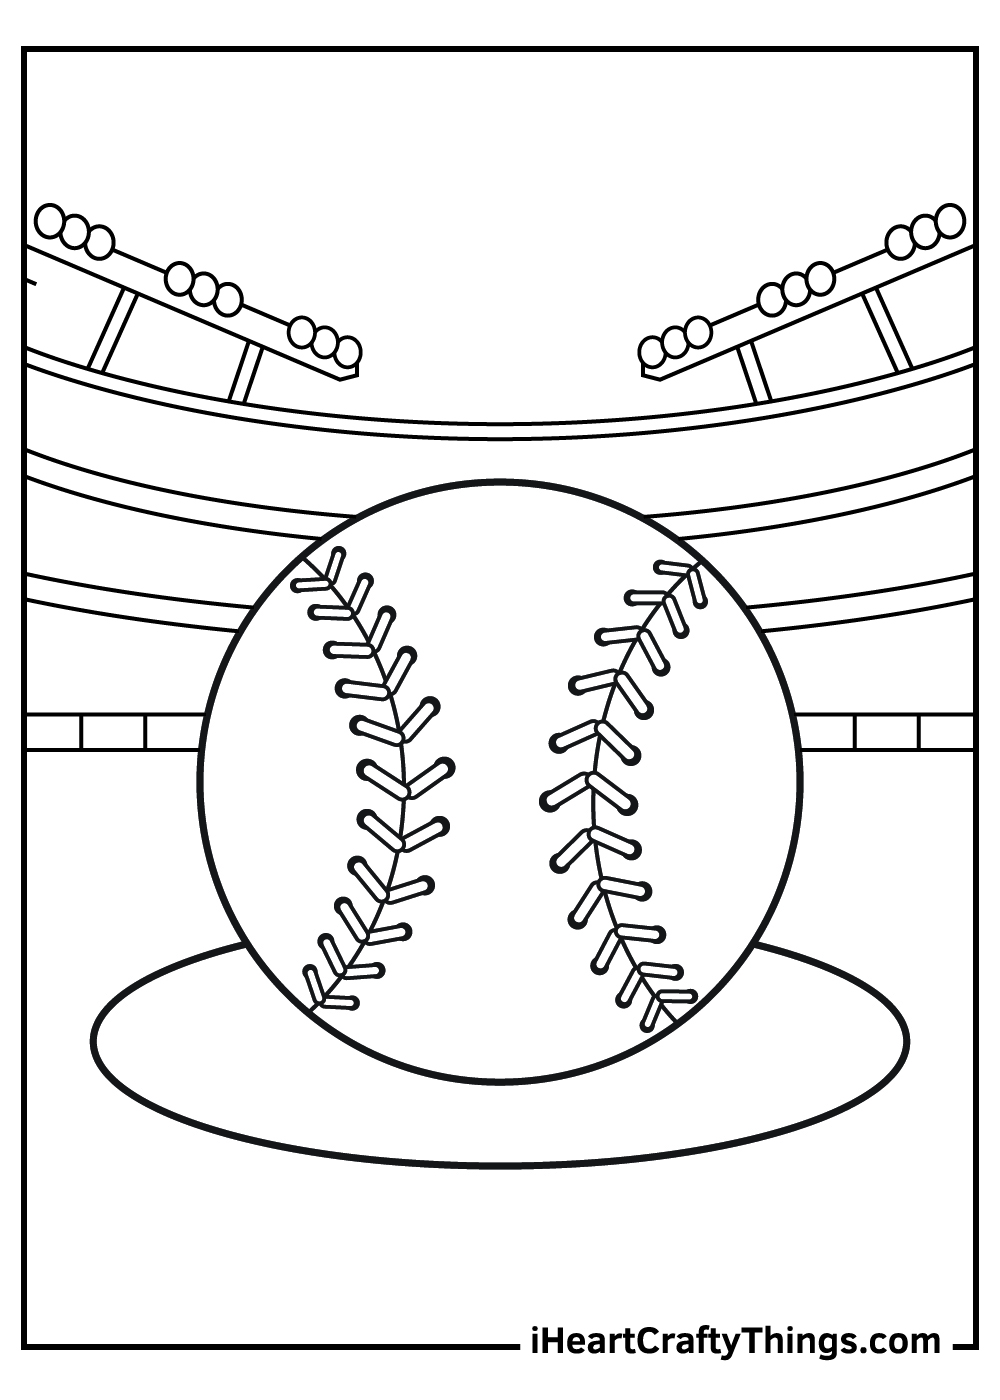 Baseball Coloring Pages Updated 2021